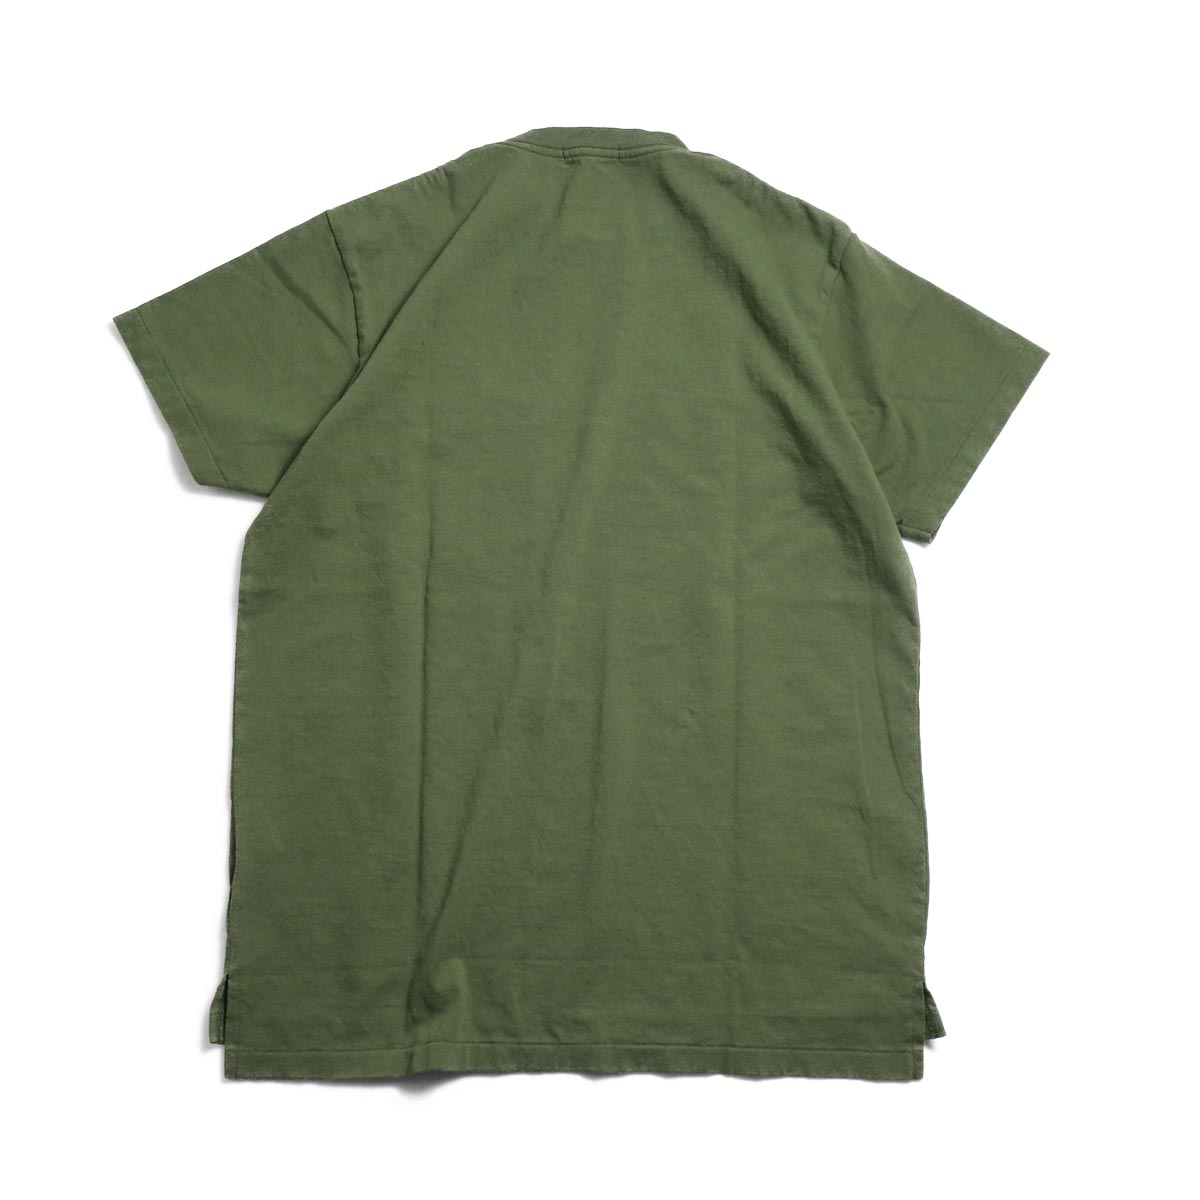 ENGINEERED GARMENTS Workaday / Crossover Neck Pocket Tee -Olive 背面